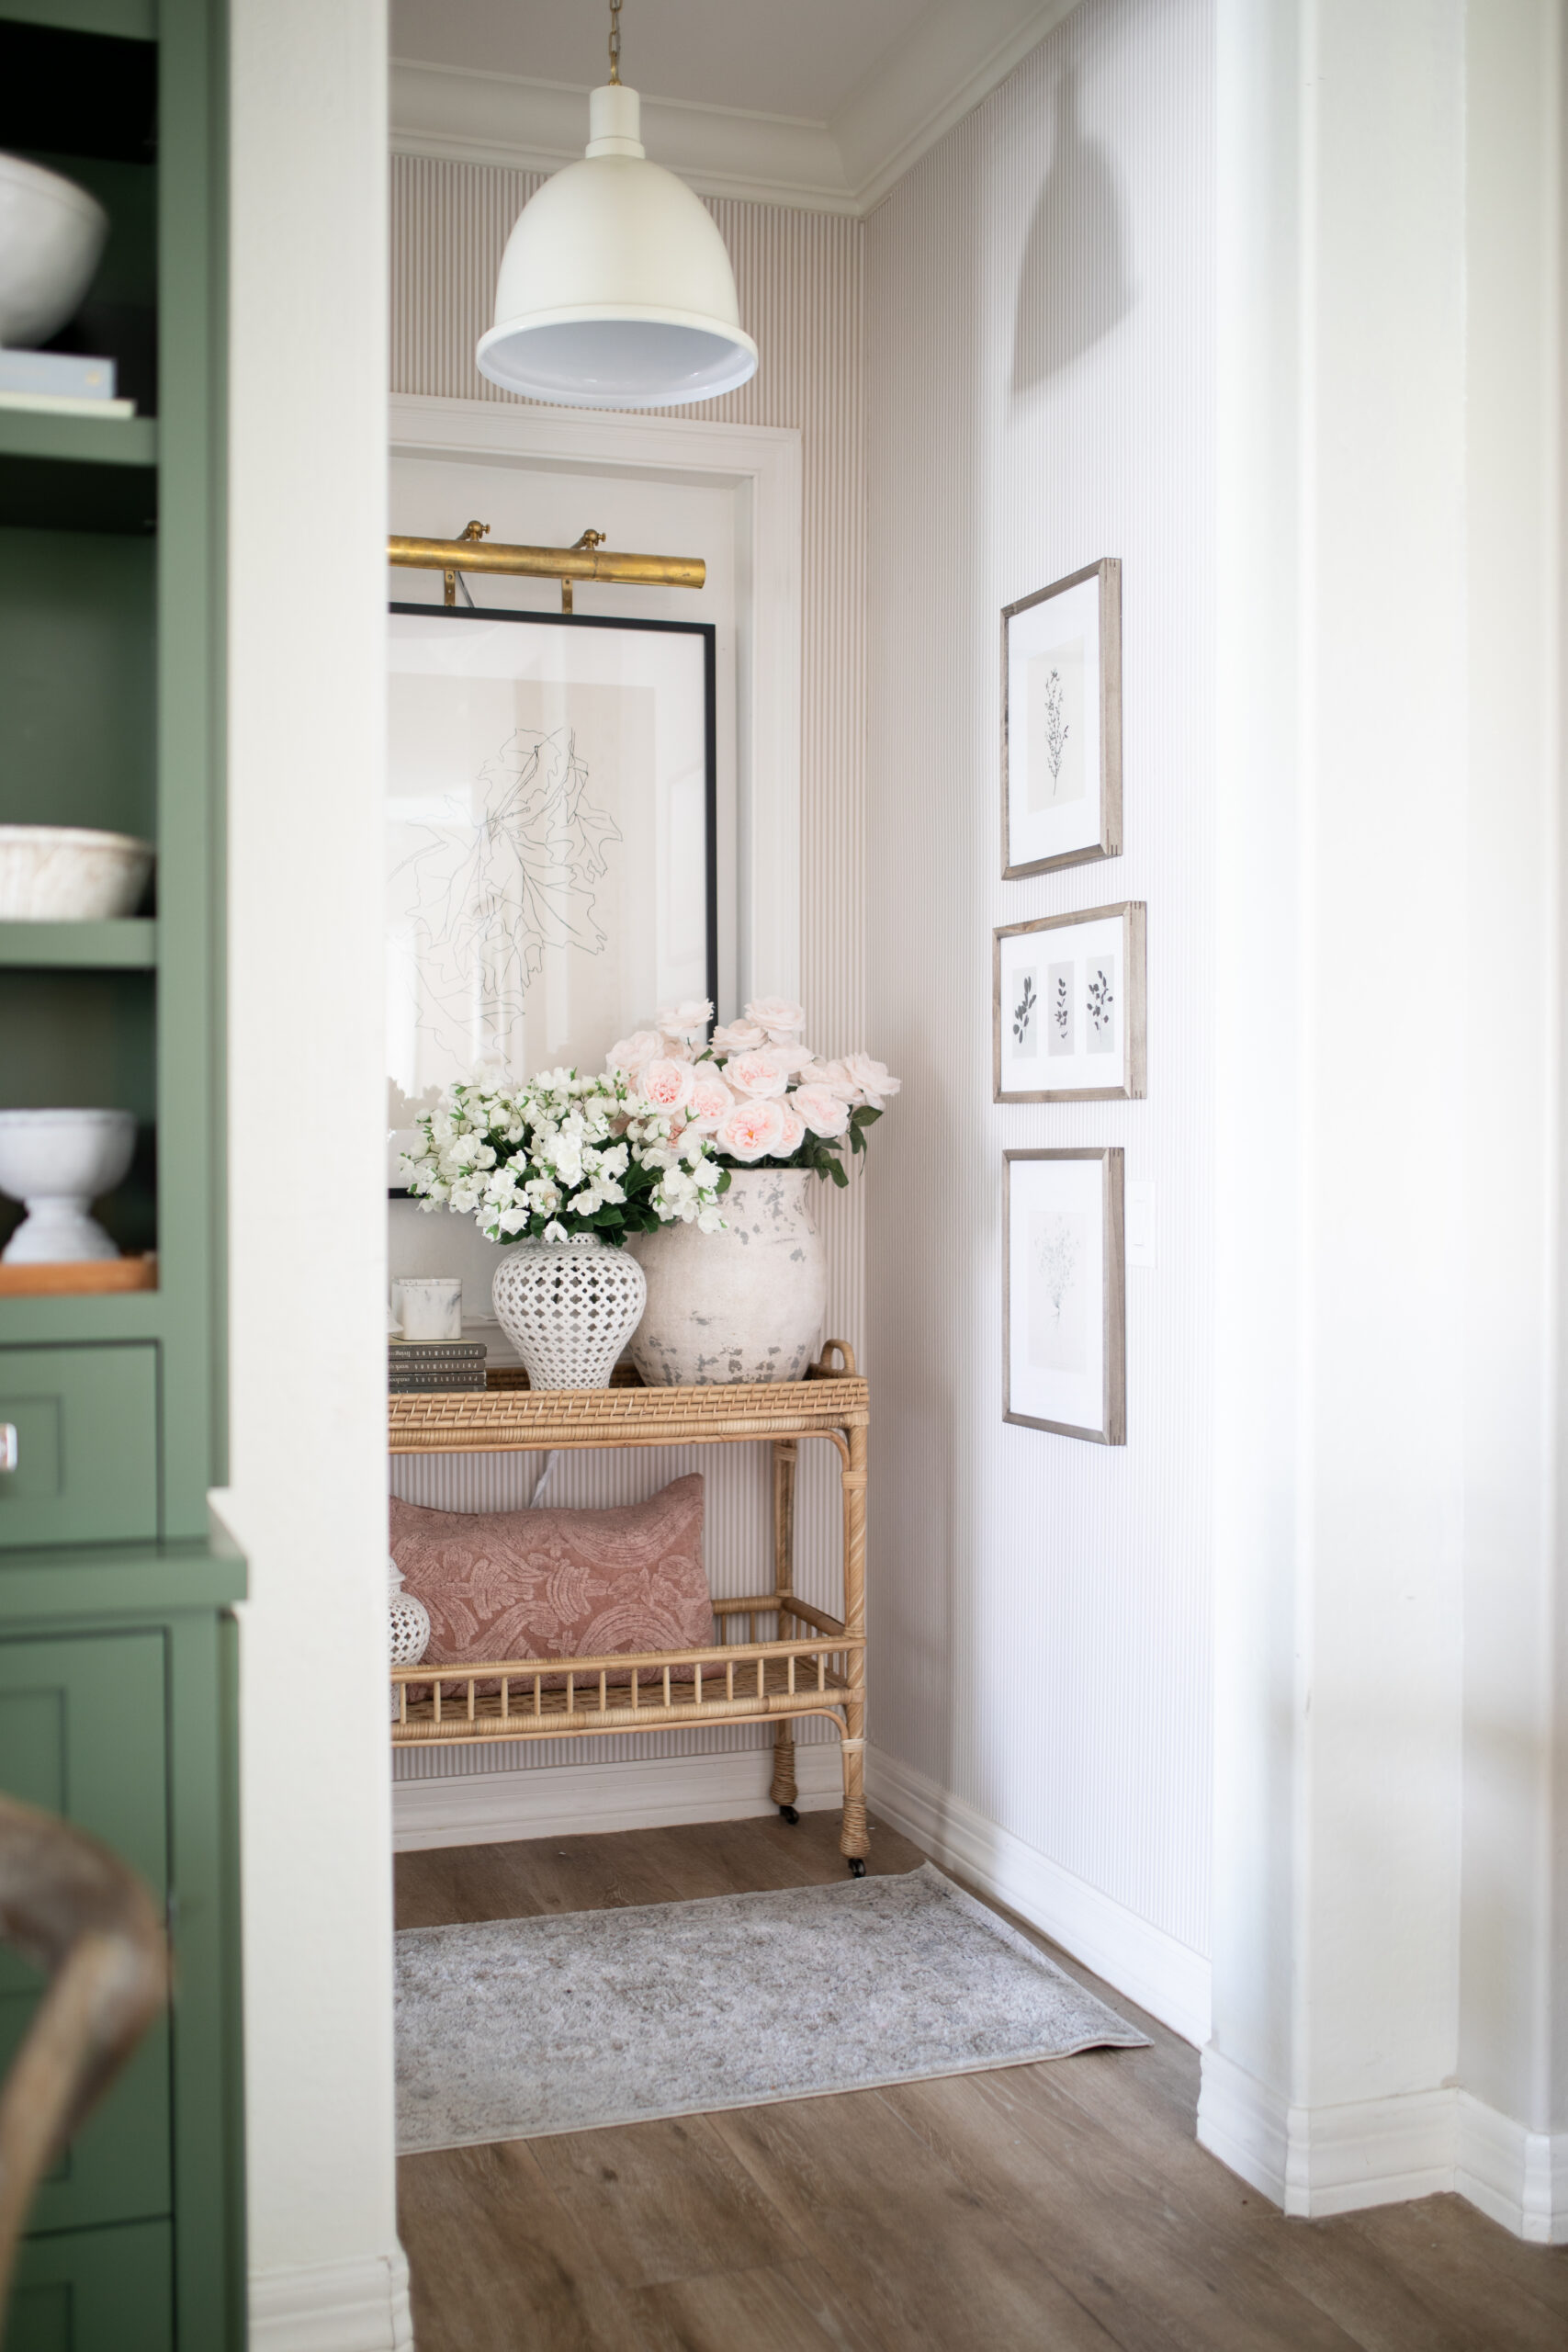 Hallway Decor, Lighting and Styling